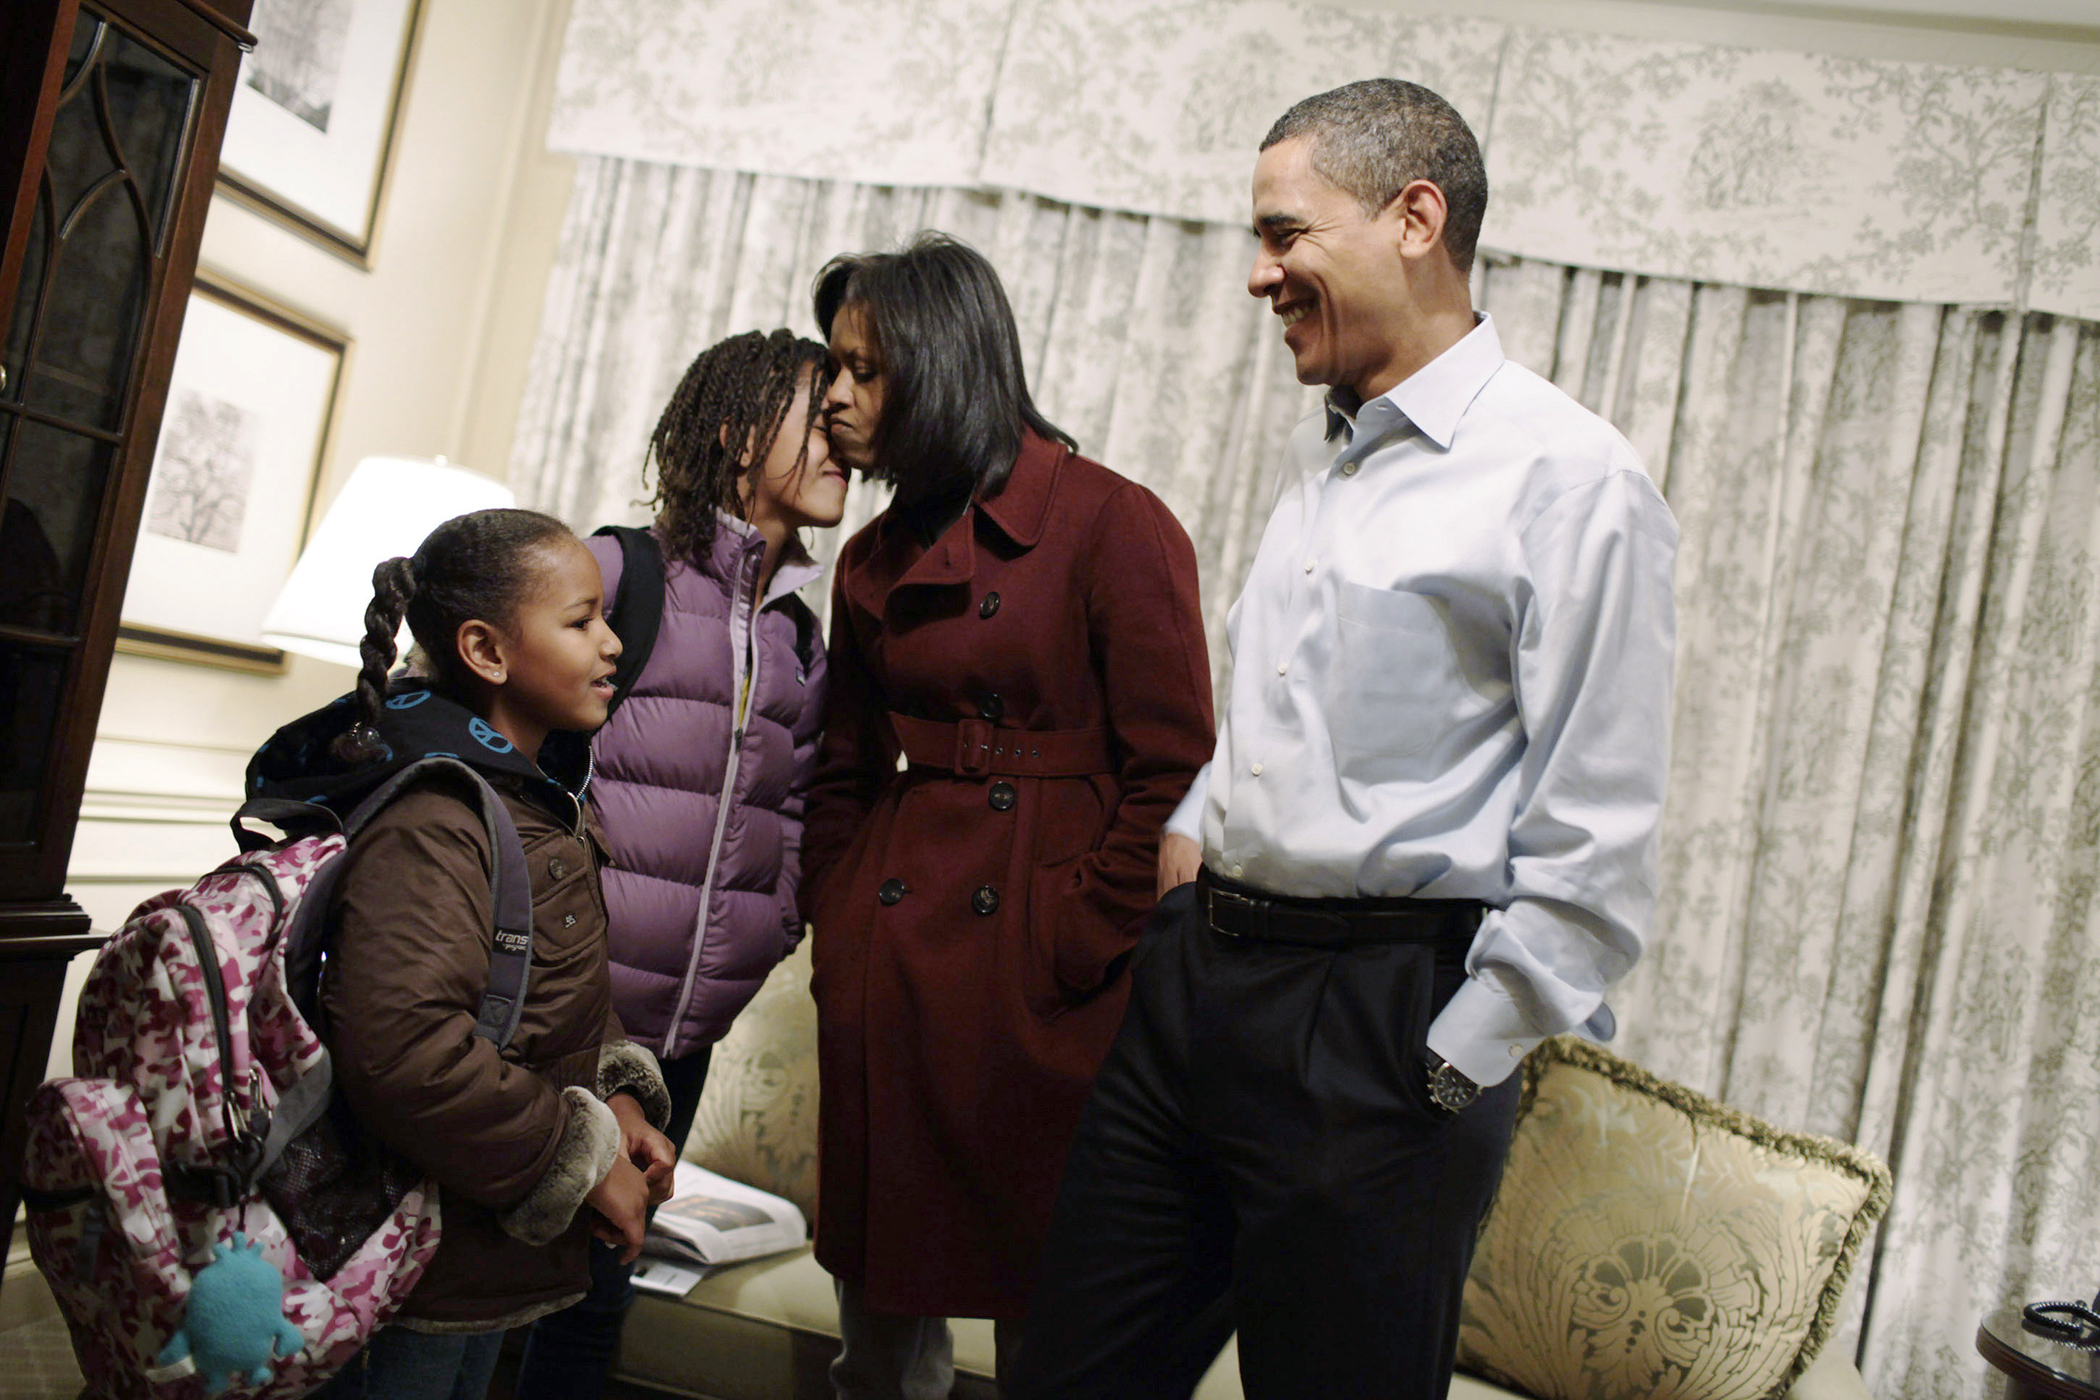 U.S. President elect Barack Obama and Michelle Obama get their daughters Sasha (L) and Malia (second from left) ready for their first day of school at Sidwell Friends in Washington January 5, 2009. The Obama family is staying at the Hay Adams Hotel in Washington until they move to Blair House, and then to the White House on January 20, 2009.